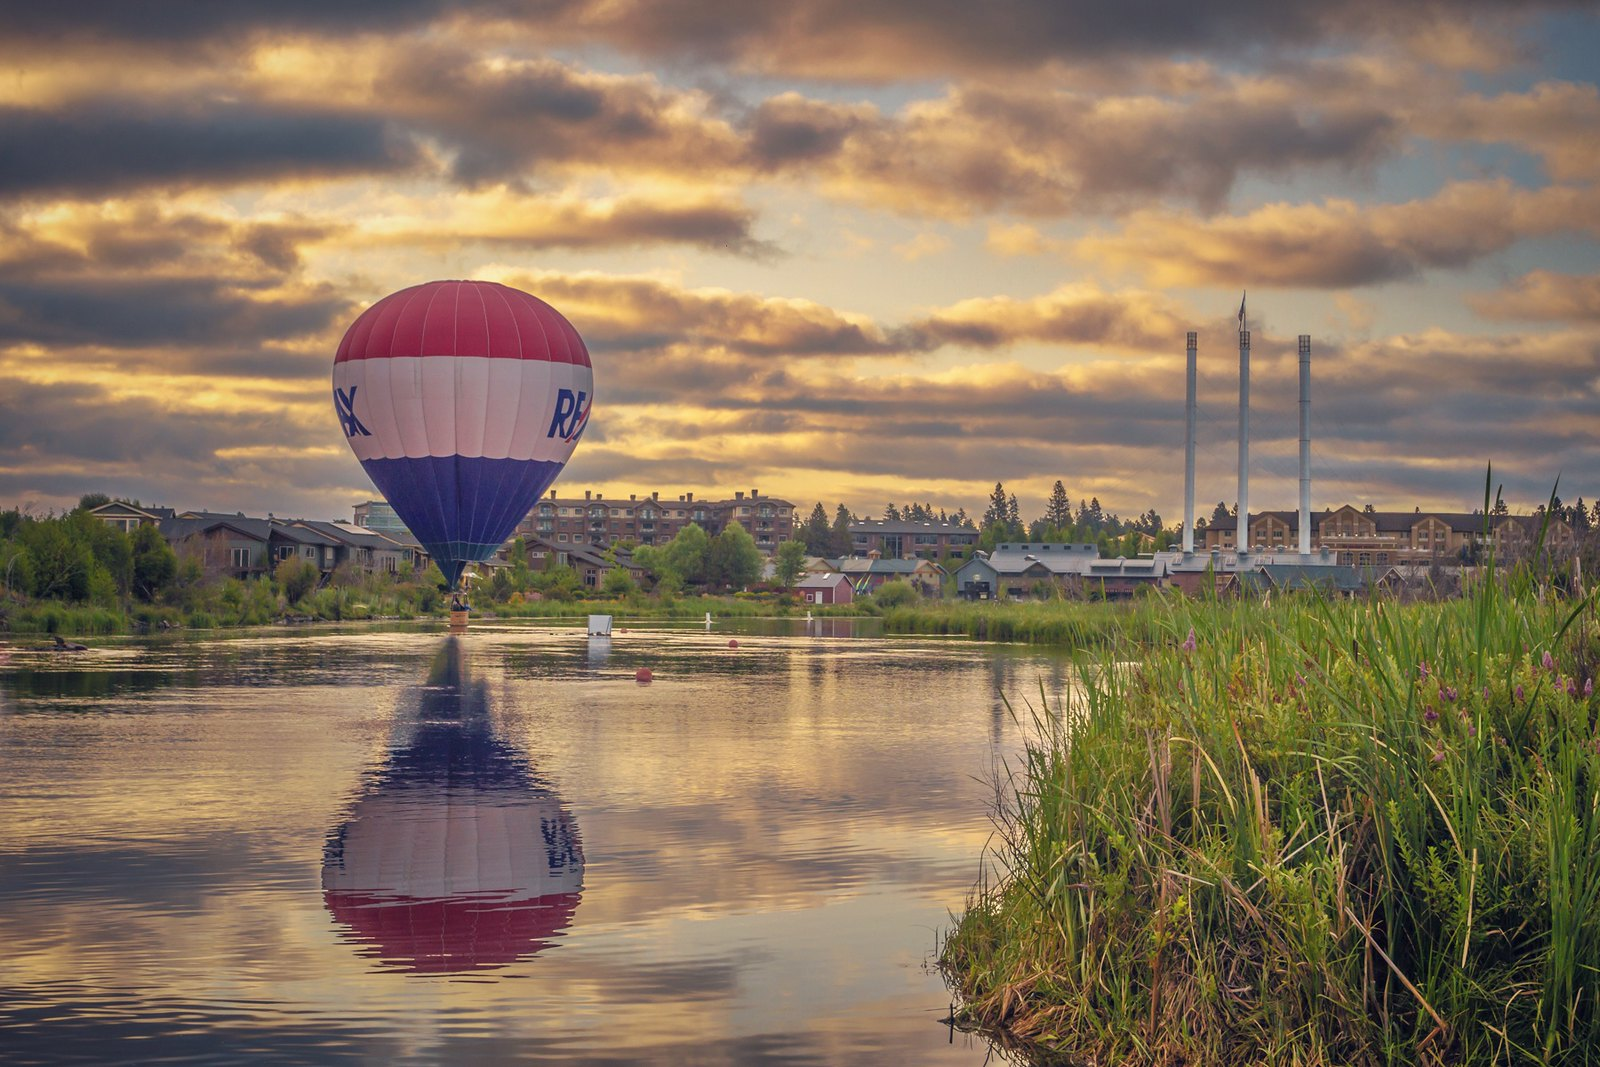 A hot air balloon at sunset in Bend Oregon